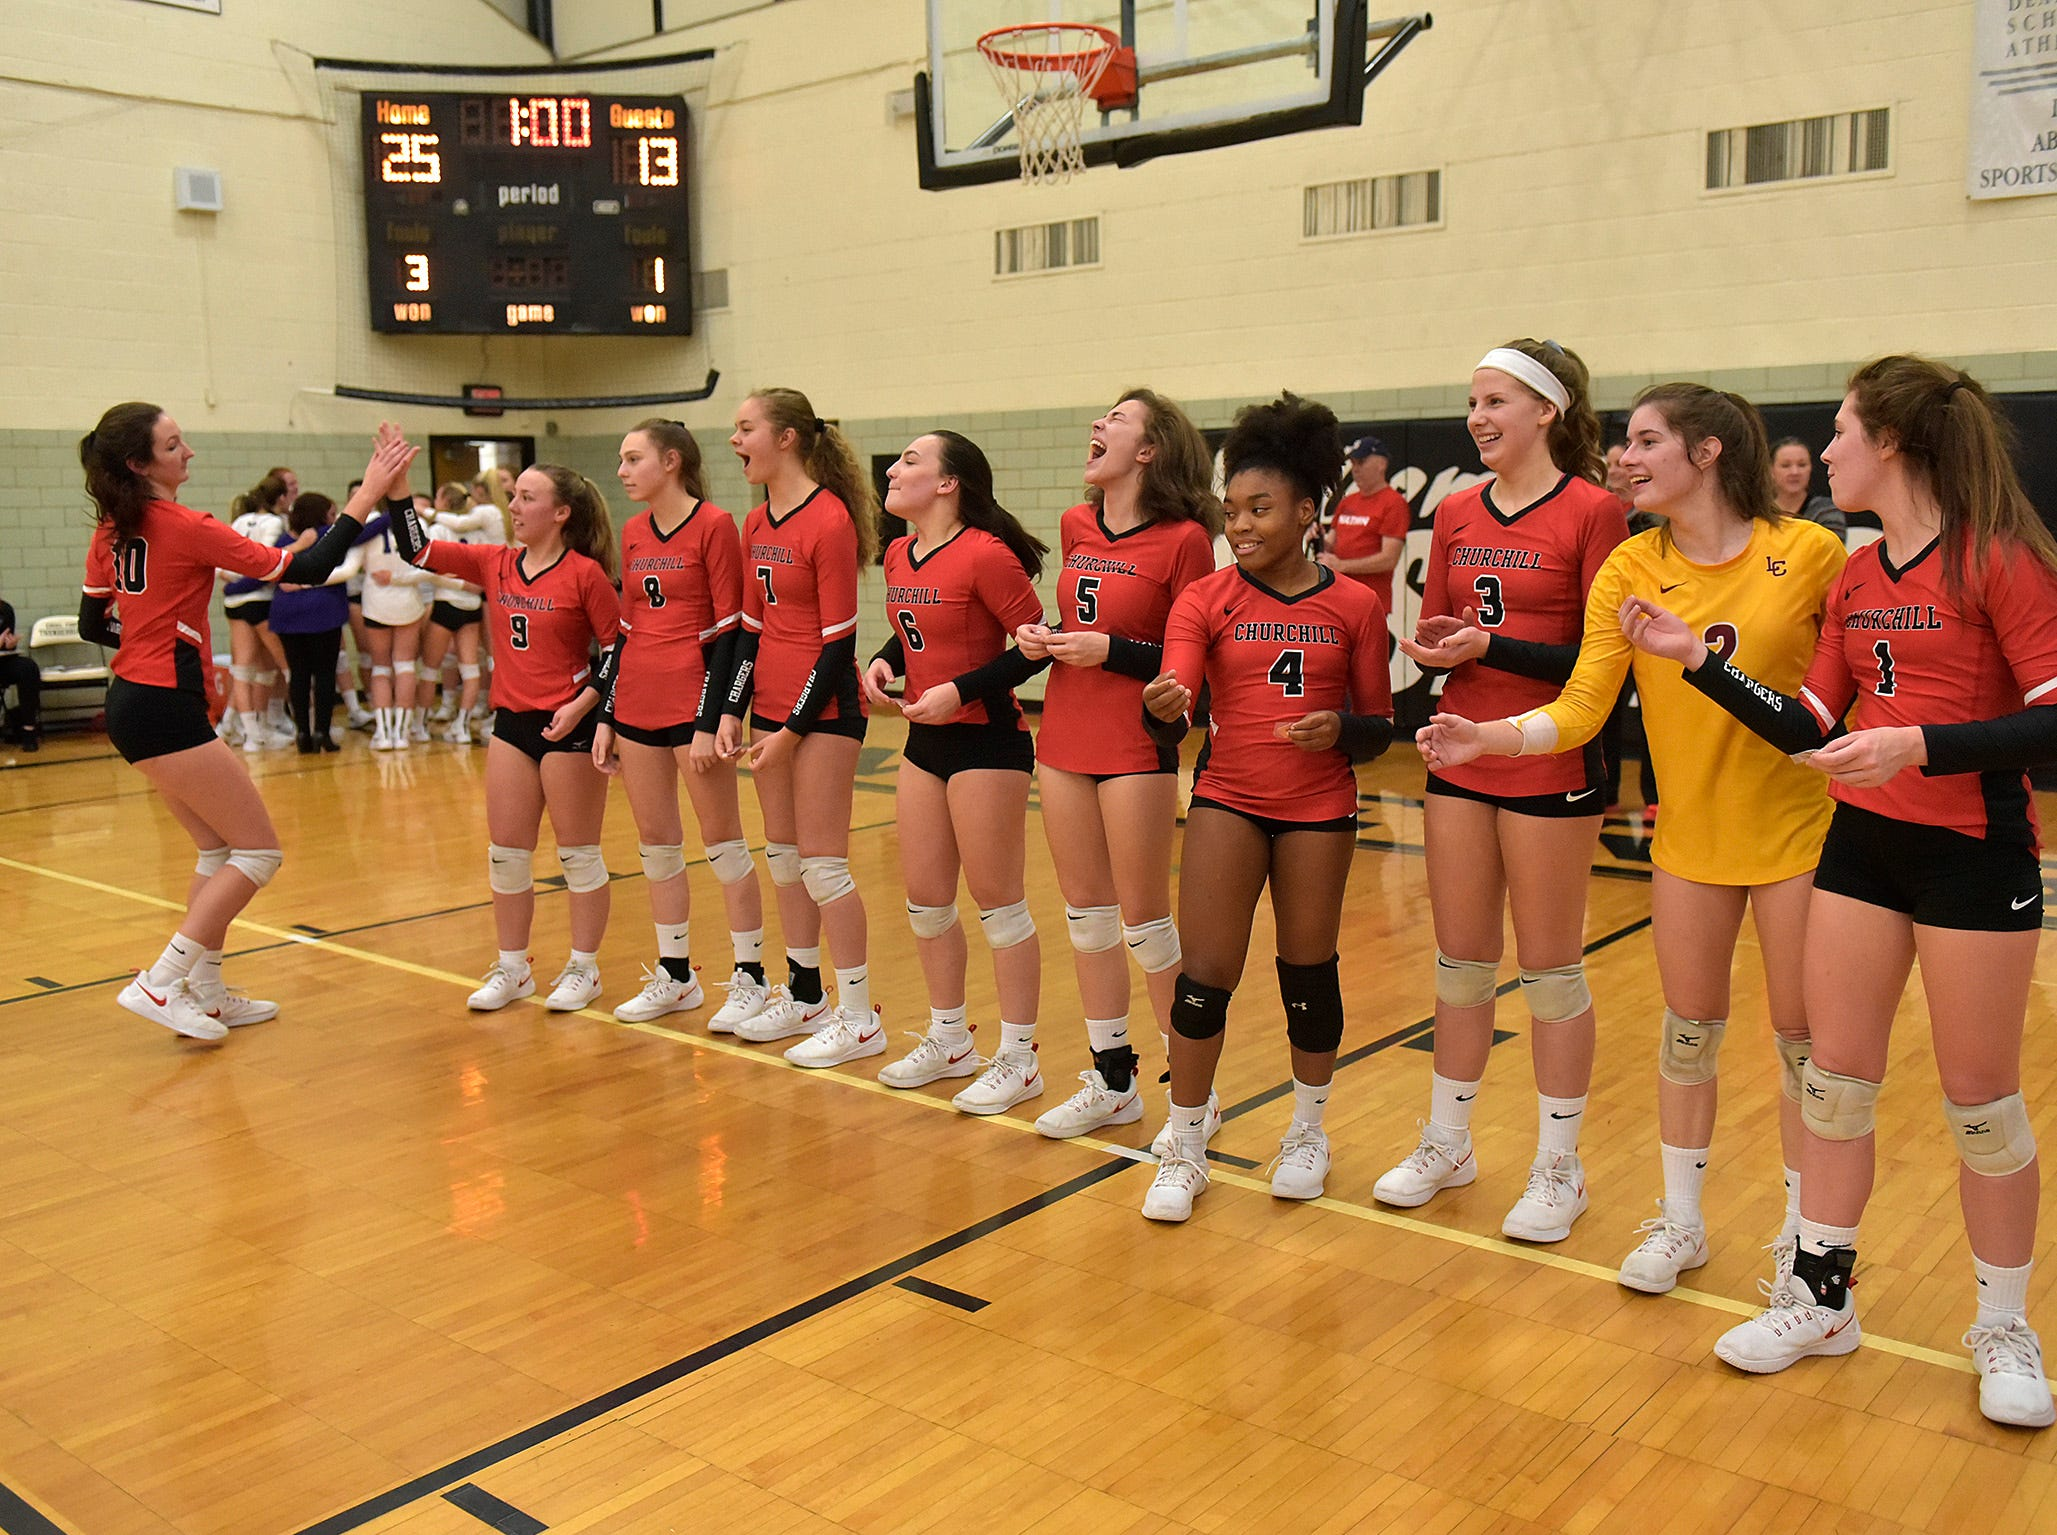 Churchill receives their medals. In the background, Woodhaven gathers after the loss.